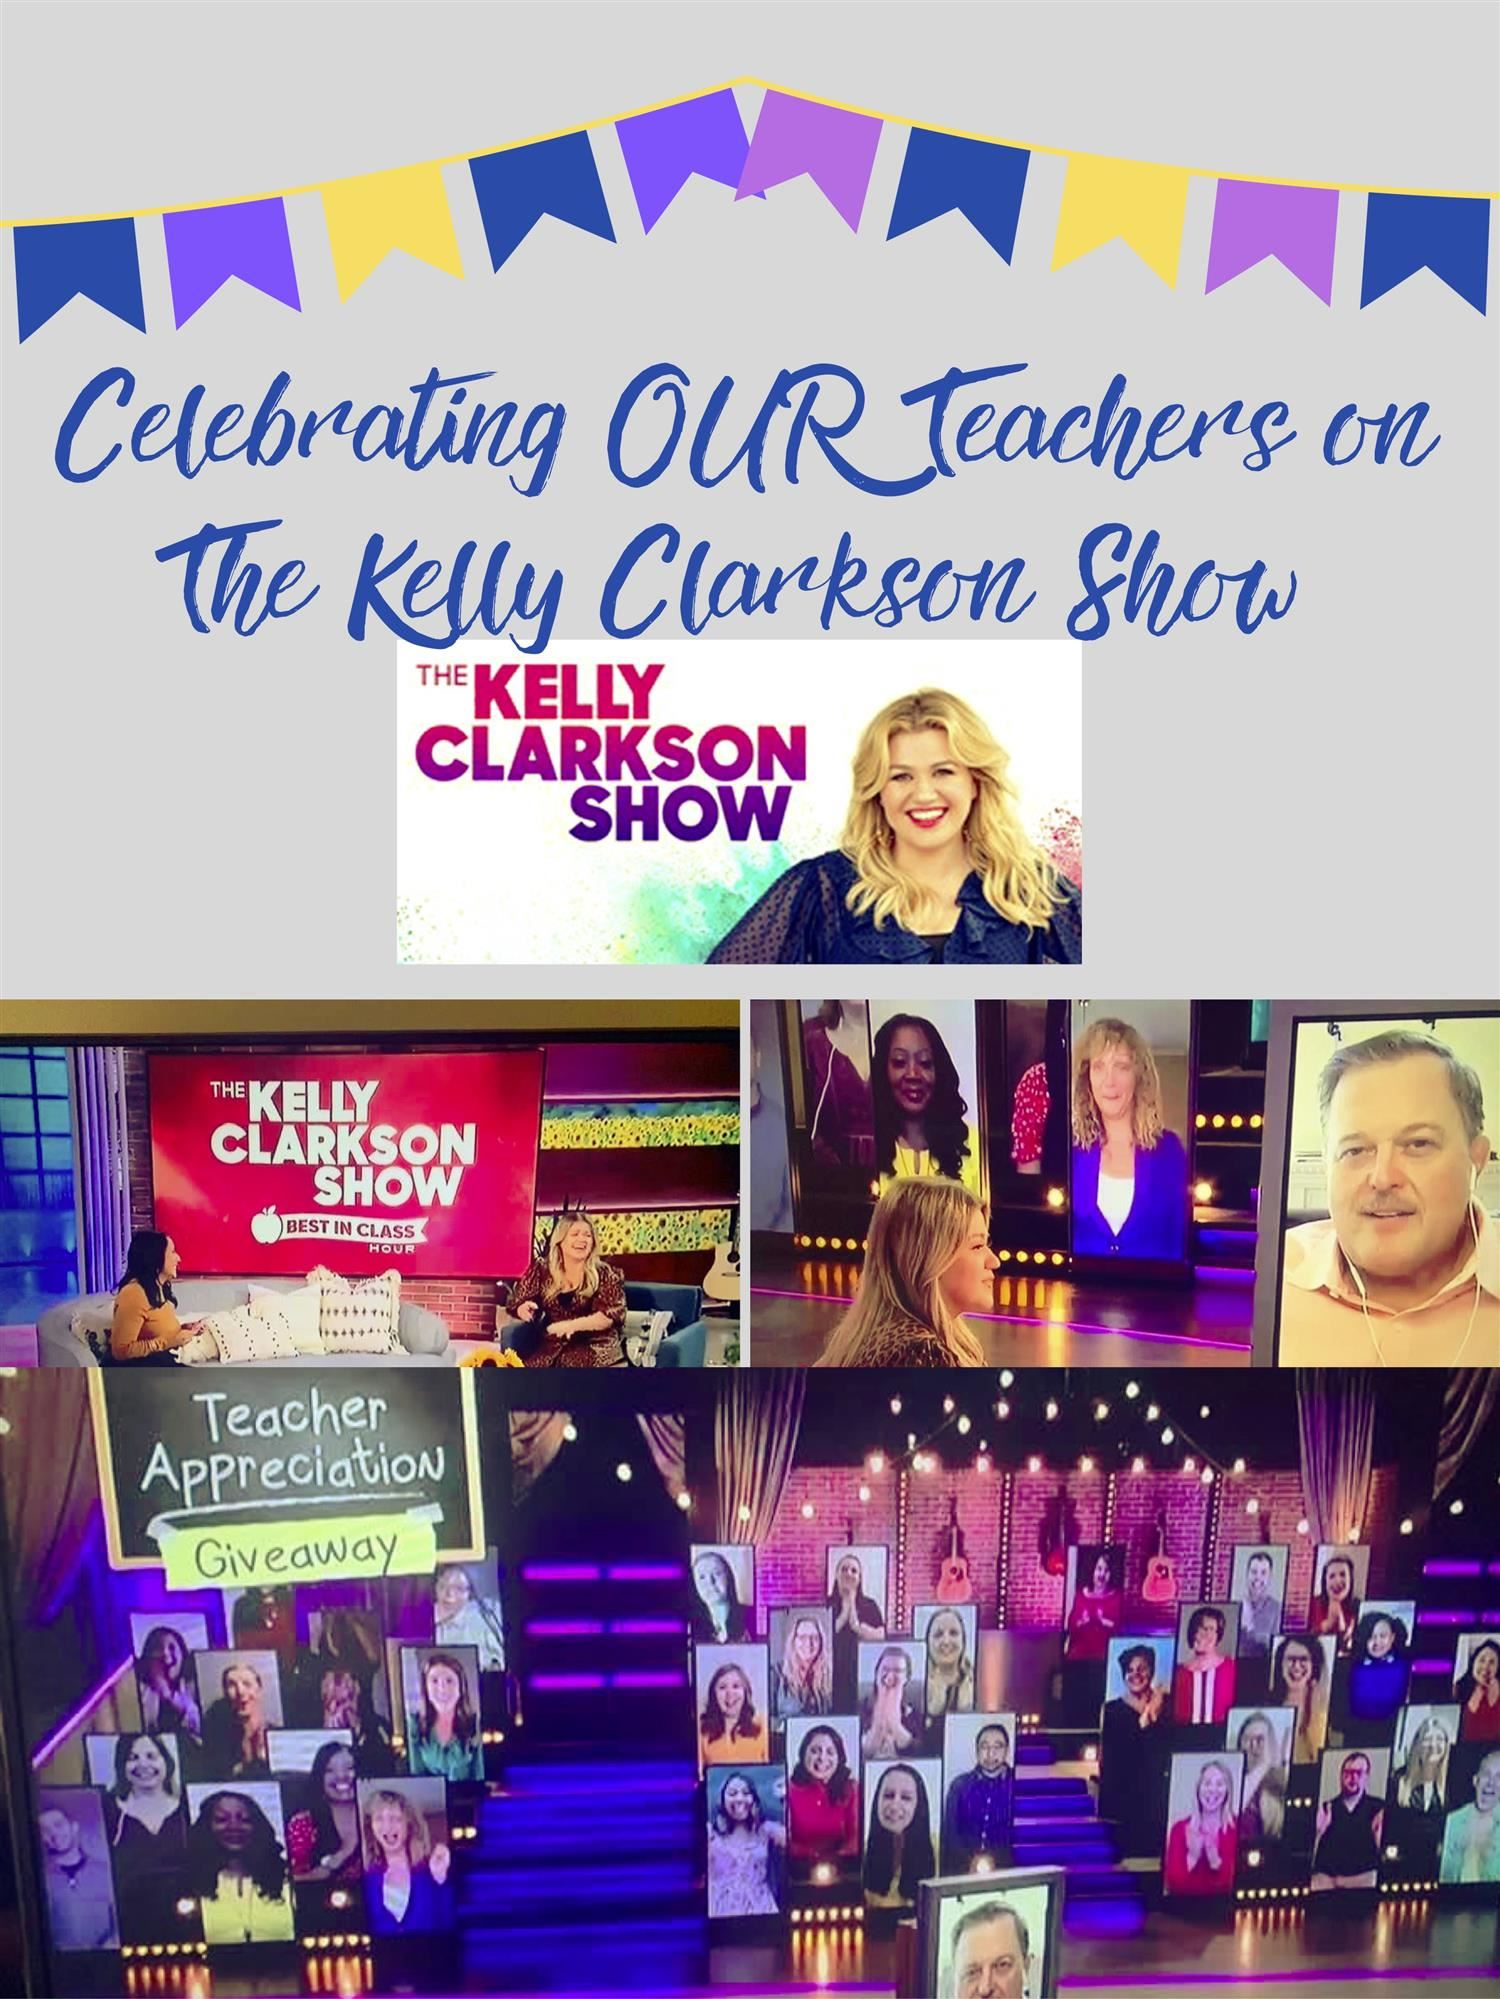 Celebrating OUR Teachers on The Kelly Clarkson Show